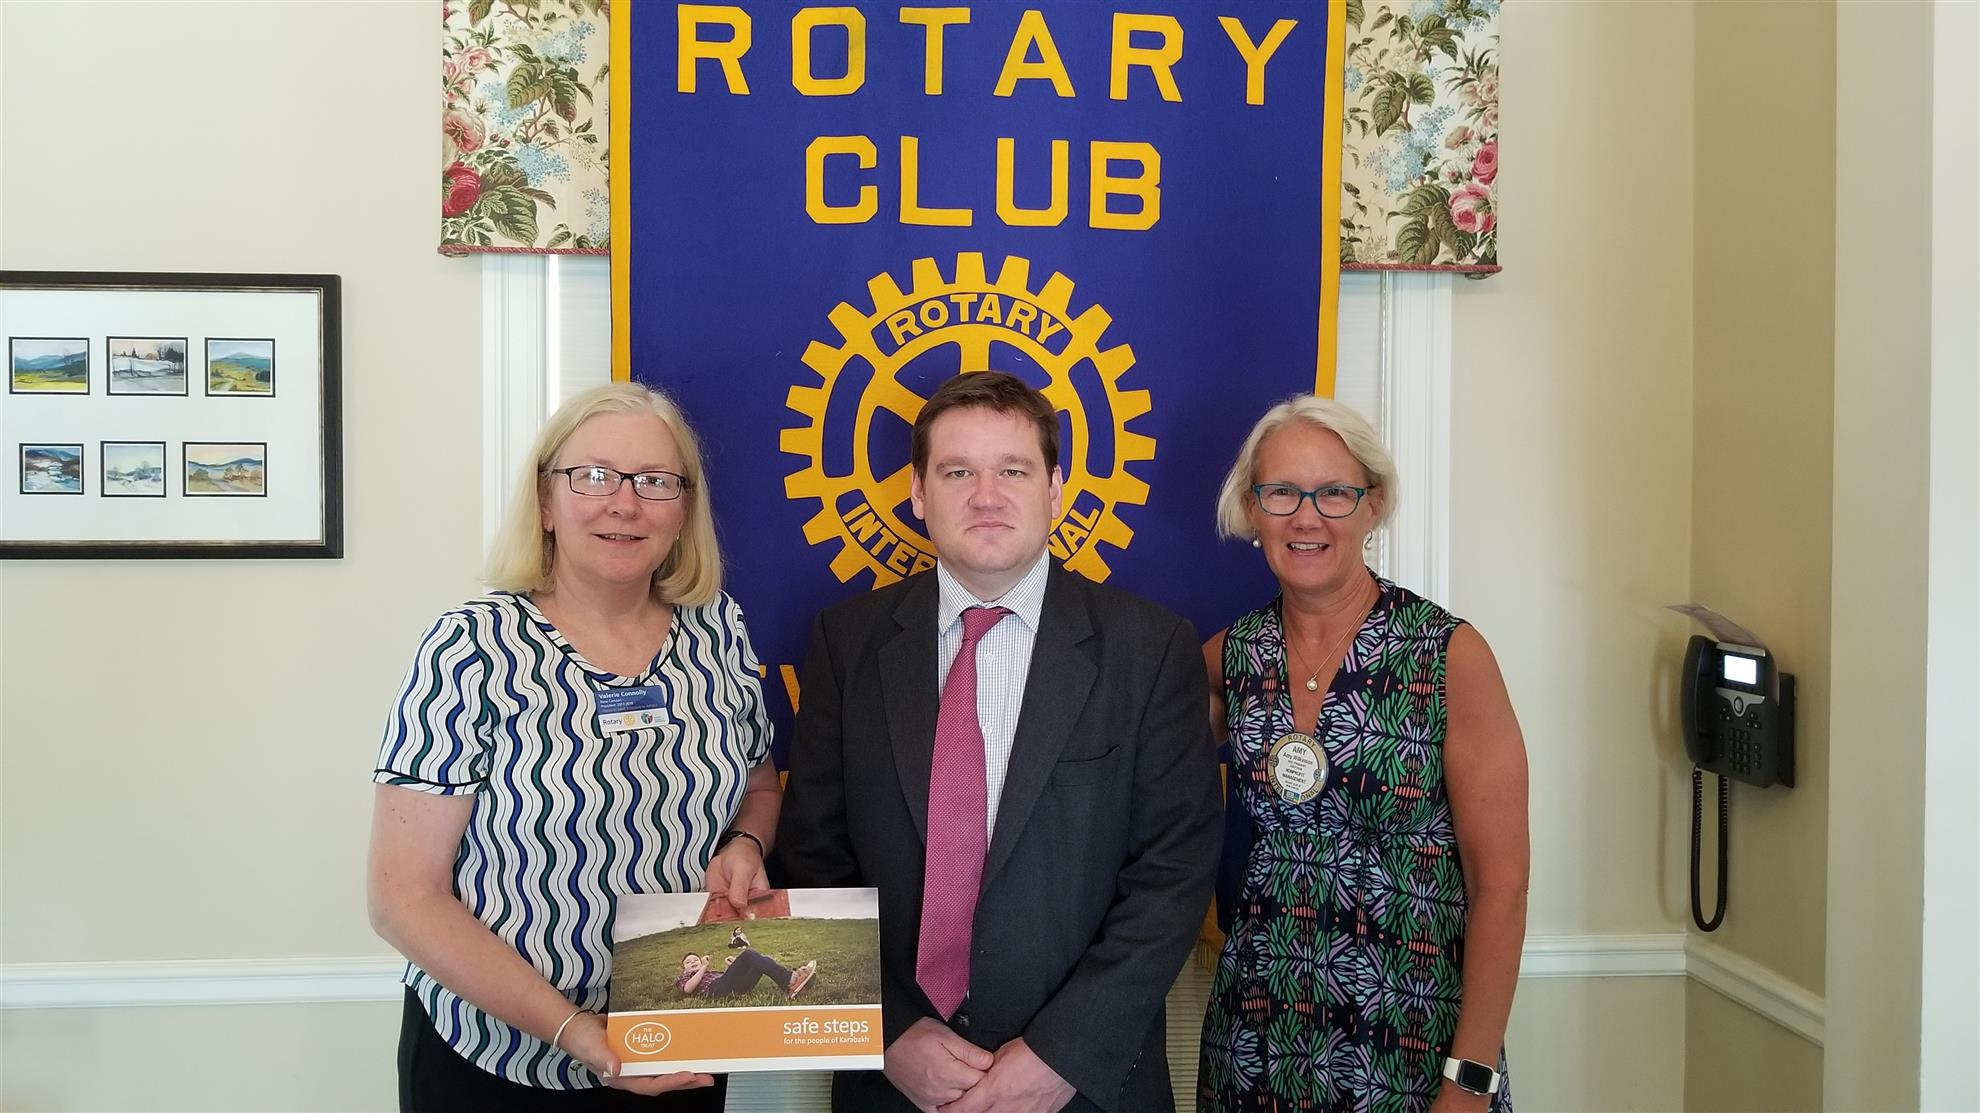 Club President, Valerie Connolly, welcomes Adam Jasinski, Executive Director of the HALO Trust, along with Club Allocations Chair, Amy Wilkinson